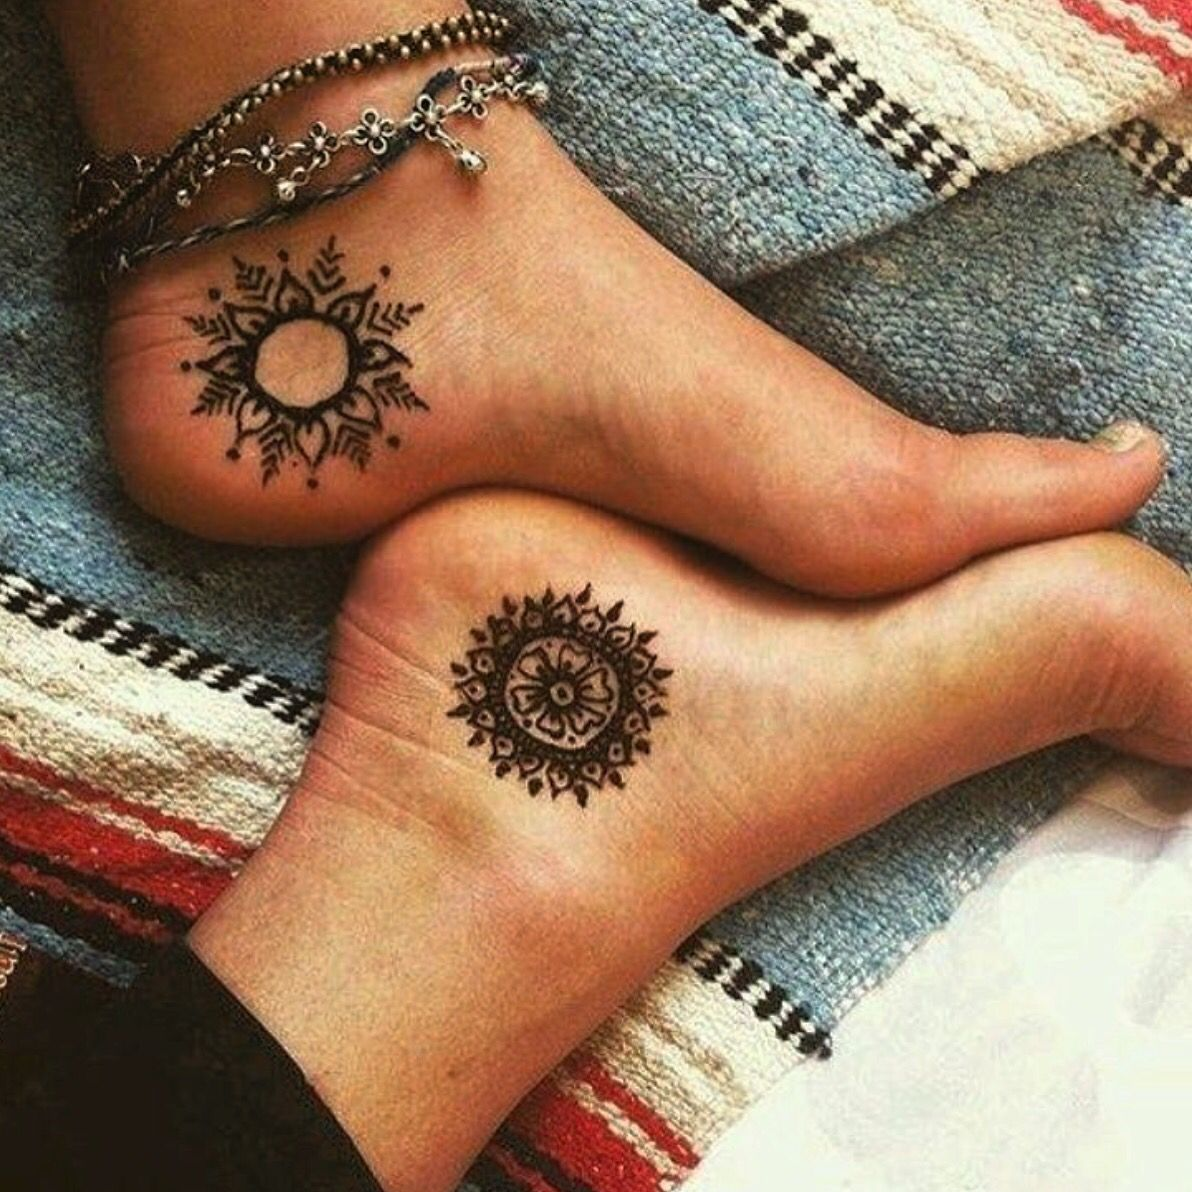 e74330688 Embody your highest self with these earth-shatteringly gorgeous mandala  tattoos